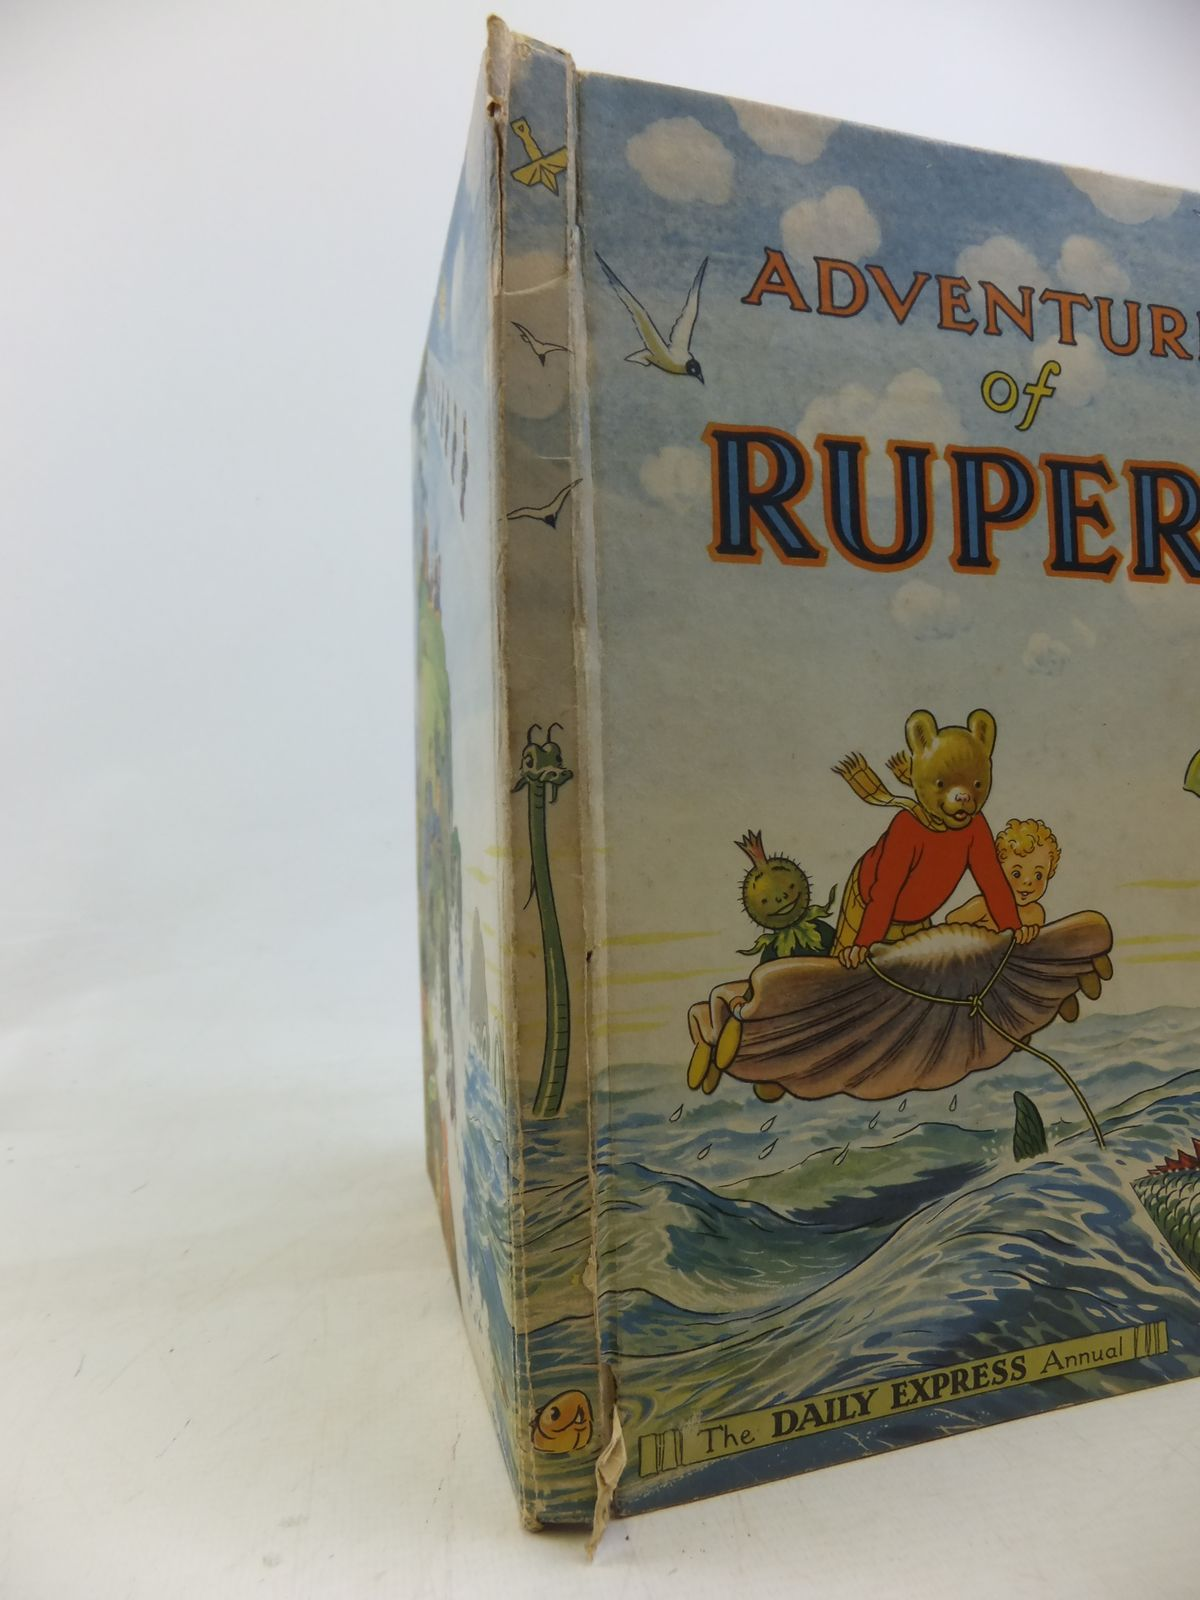 Photo of RUPERT ANNUAL 1950 - ADVENTURES OF RUPERT written by Bestall, Alfred illustrated by Bestall, Alfred published by Daily Express (STOCK CODE: 2115749)  for sale by Stella & Rose's Books